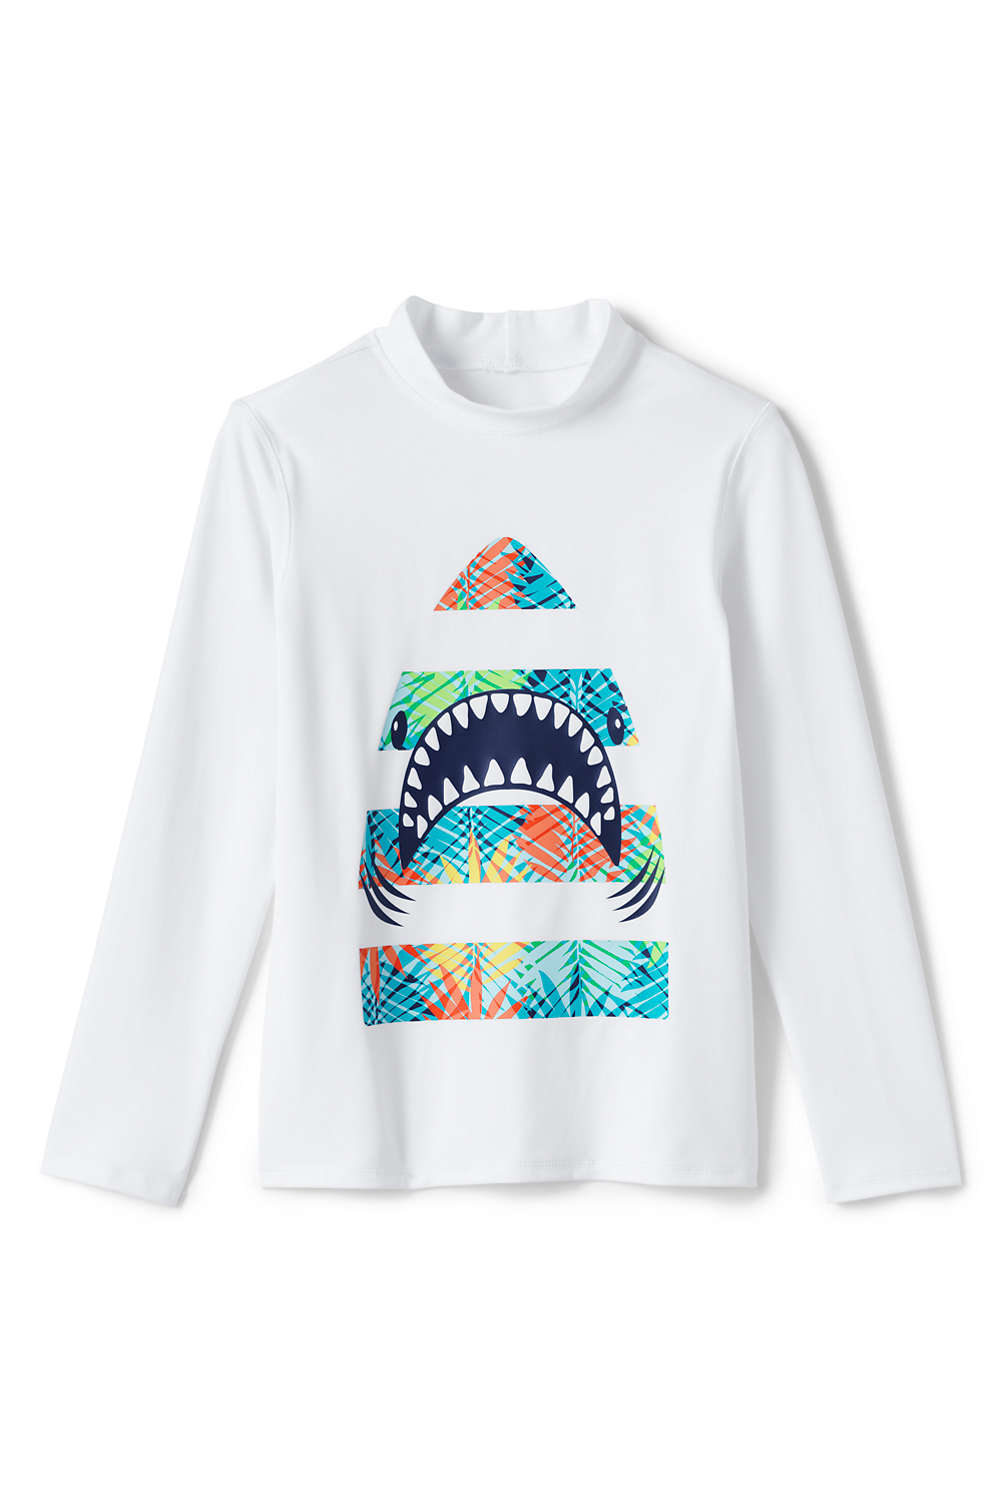 e183d93c95 Boys Long Sleeve Graphic Rash Guard from Lands' End